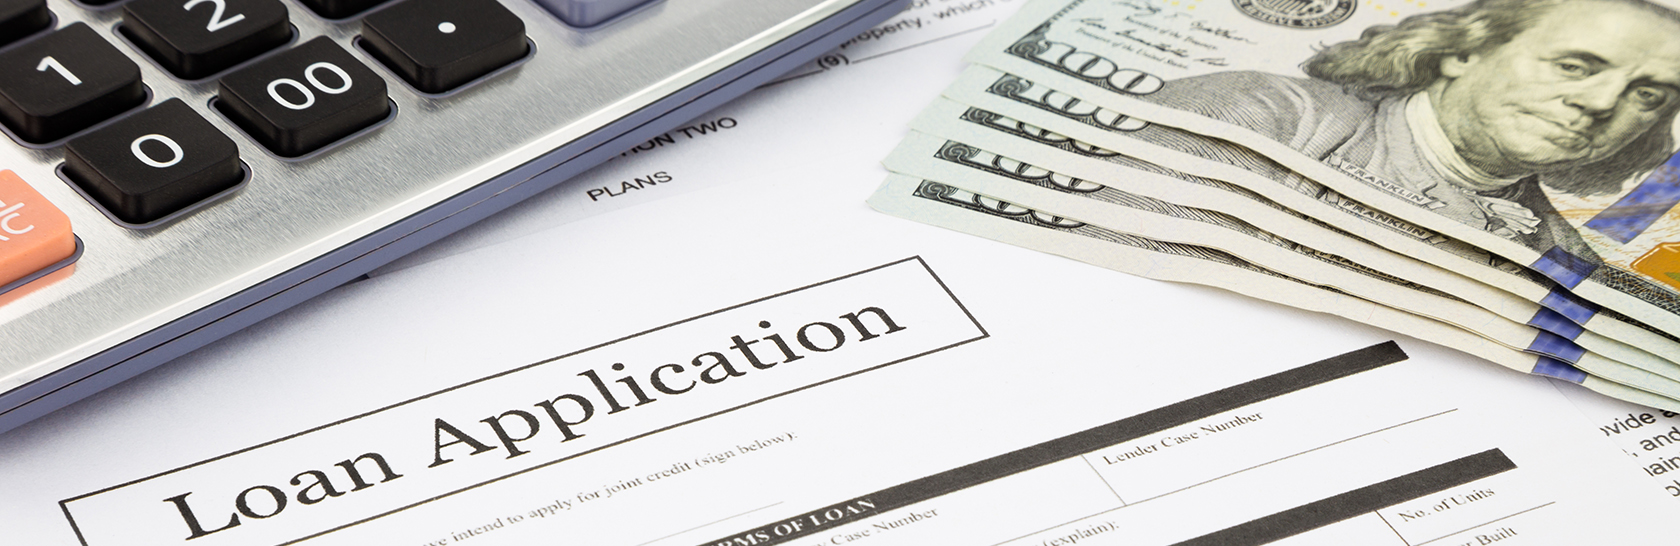 Stock photo of loan application with calculator and cash